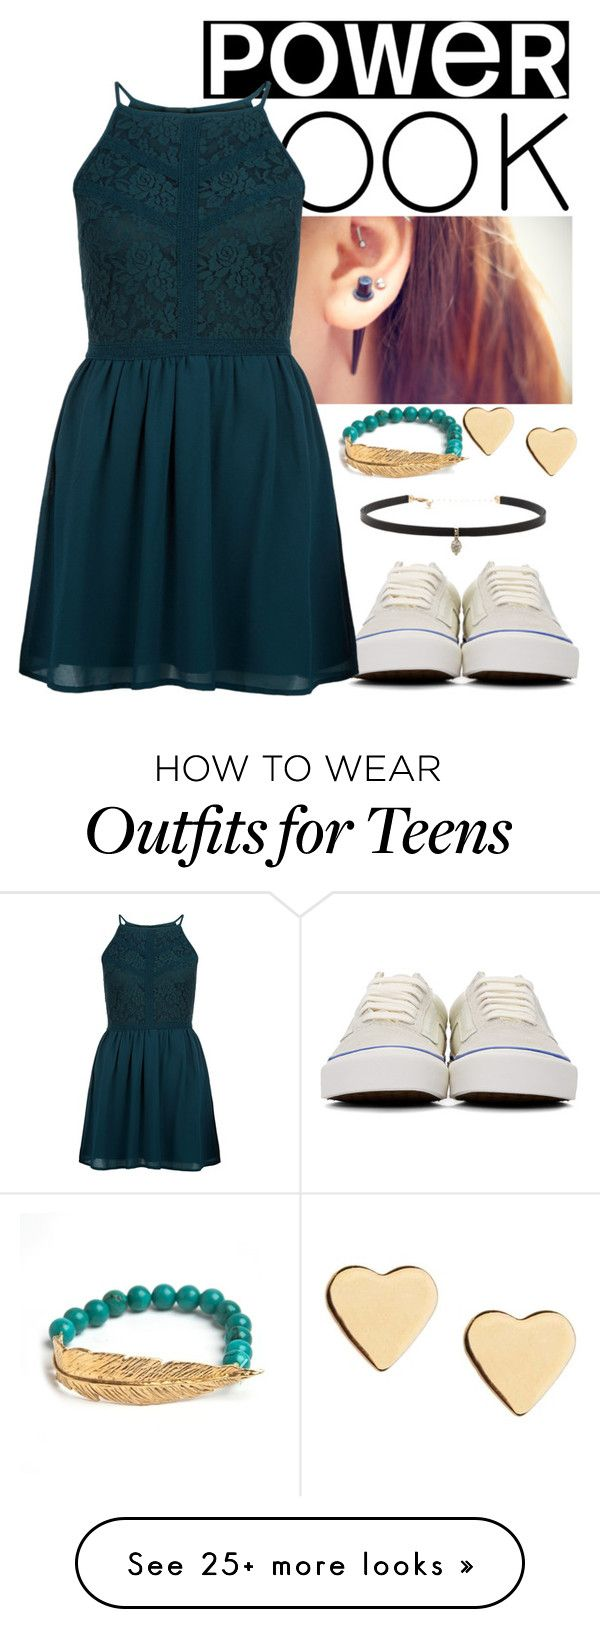 """""""Party"""" by i-m-penguin-purple974 on Polyvore featuring Vans, New Look, LeiVanKash, Lipsy, Carbon & Hyde, Nelly, vans, partydress and powerlook"""